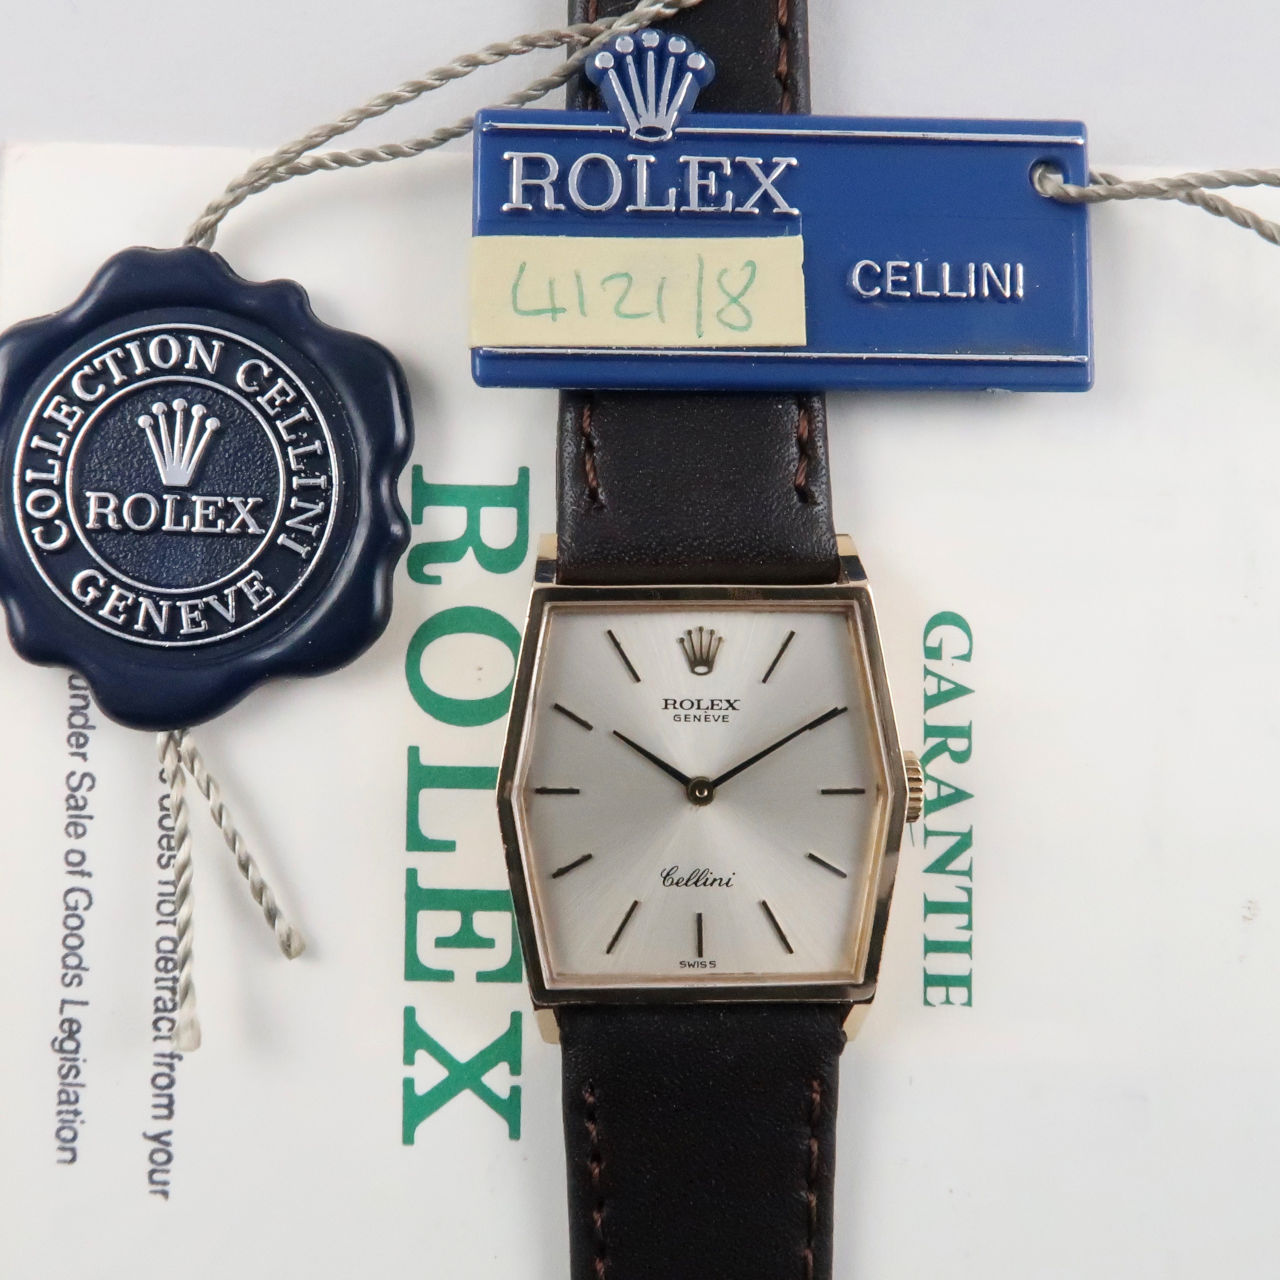 Rolex Cellini Ref. 4121 Full Set 18ct gold vintage wristwatch, sold in 1992